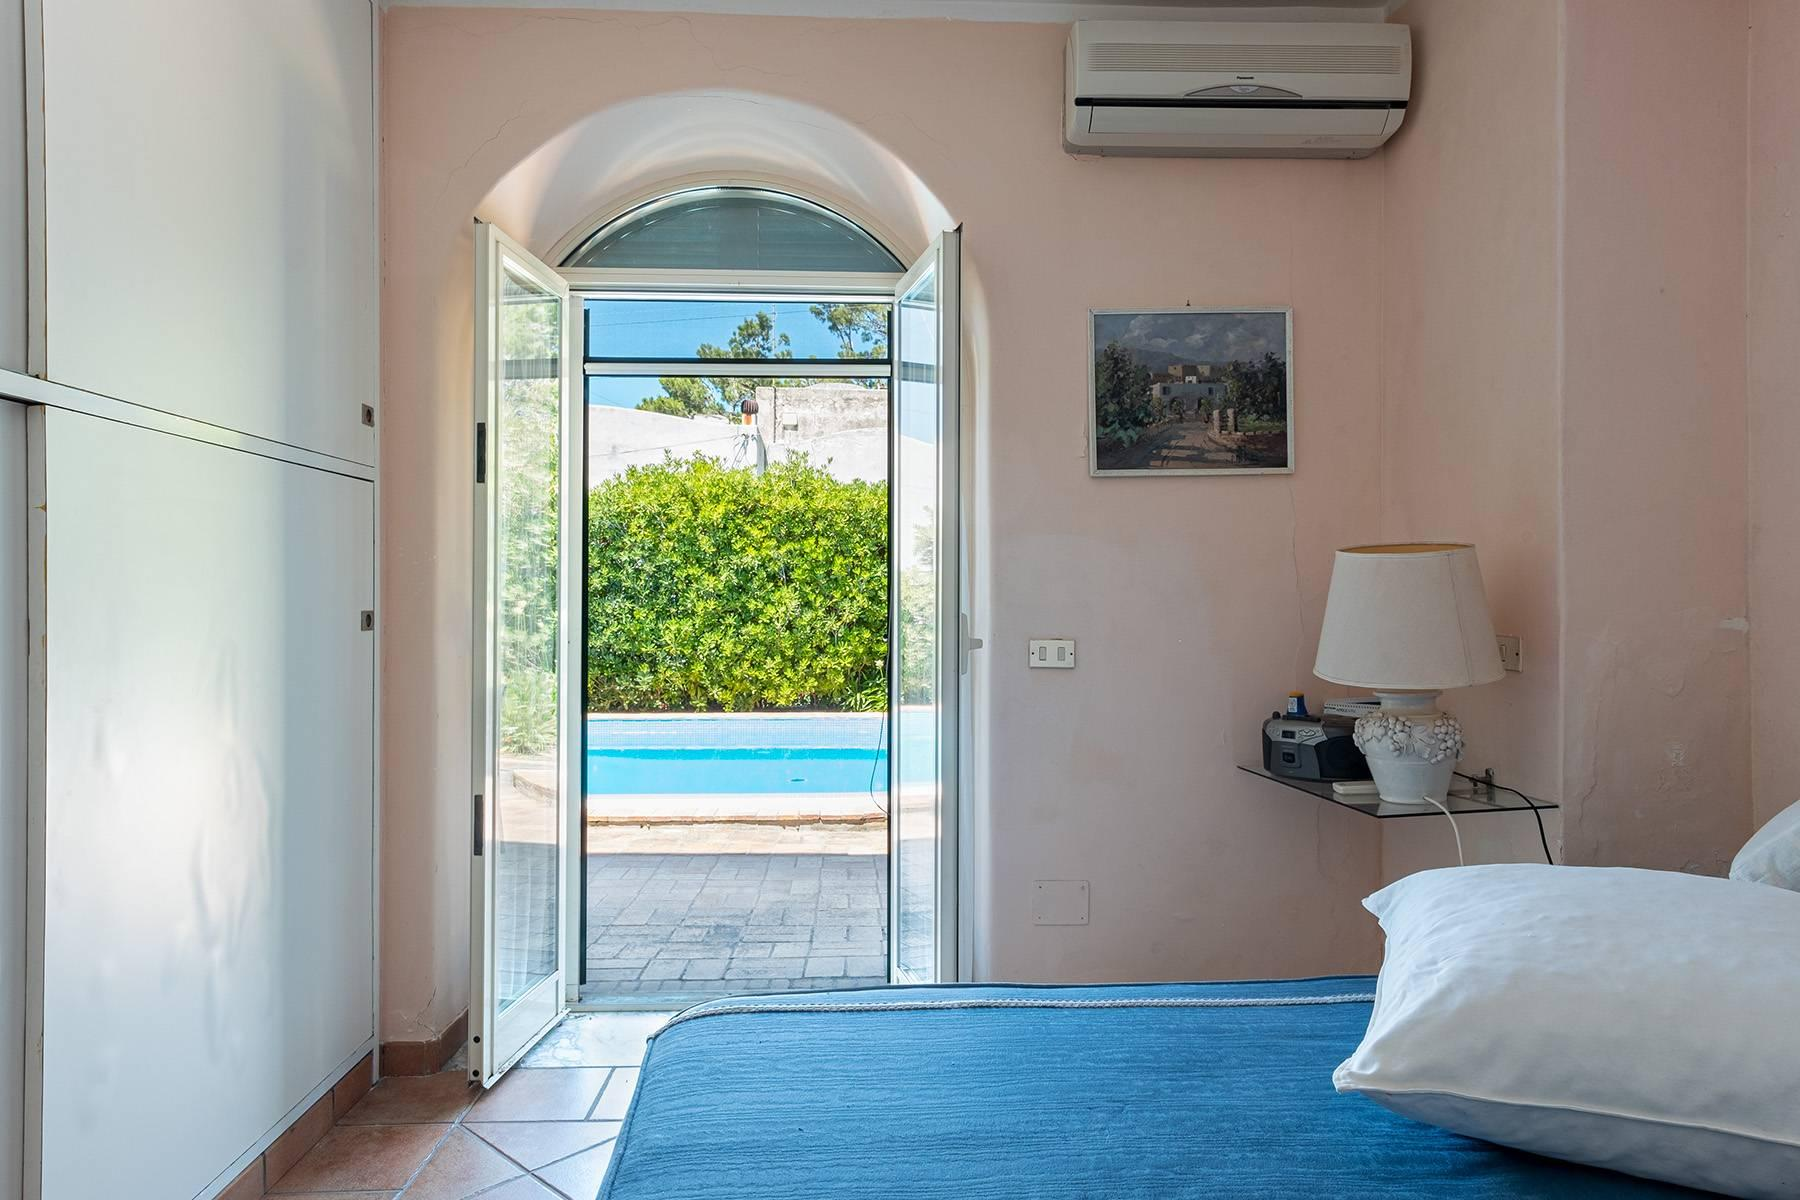 Charming villa with swimming pool in Anacapri - 12